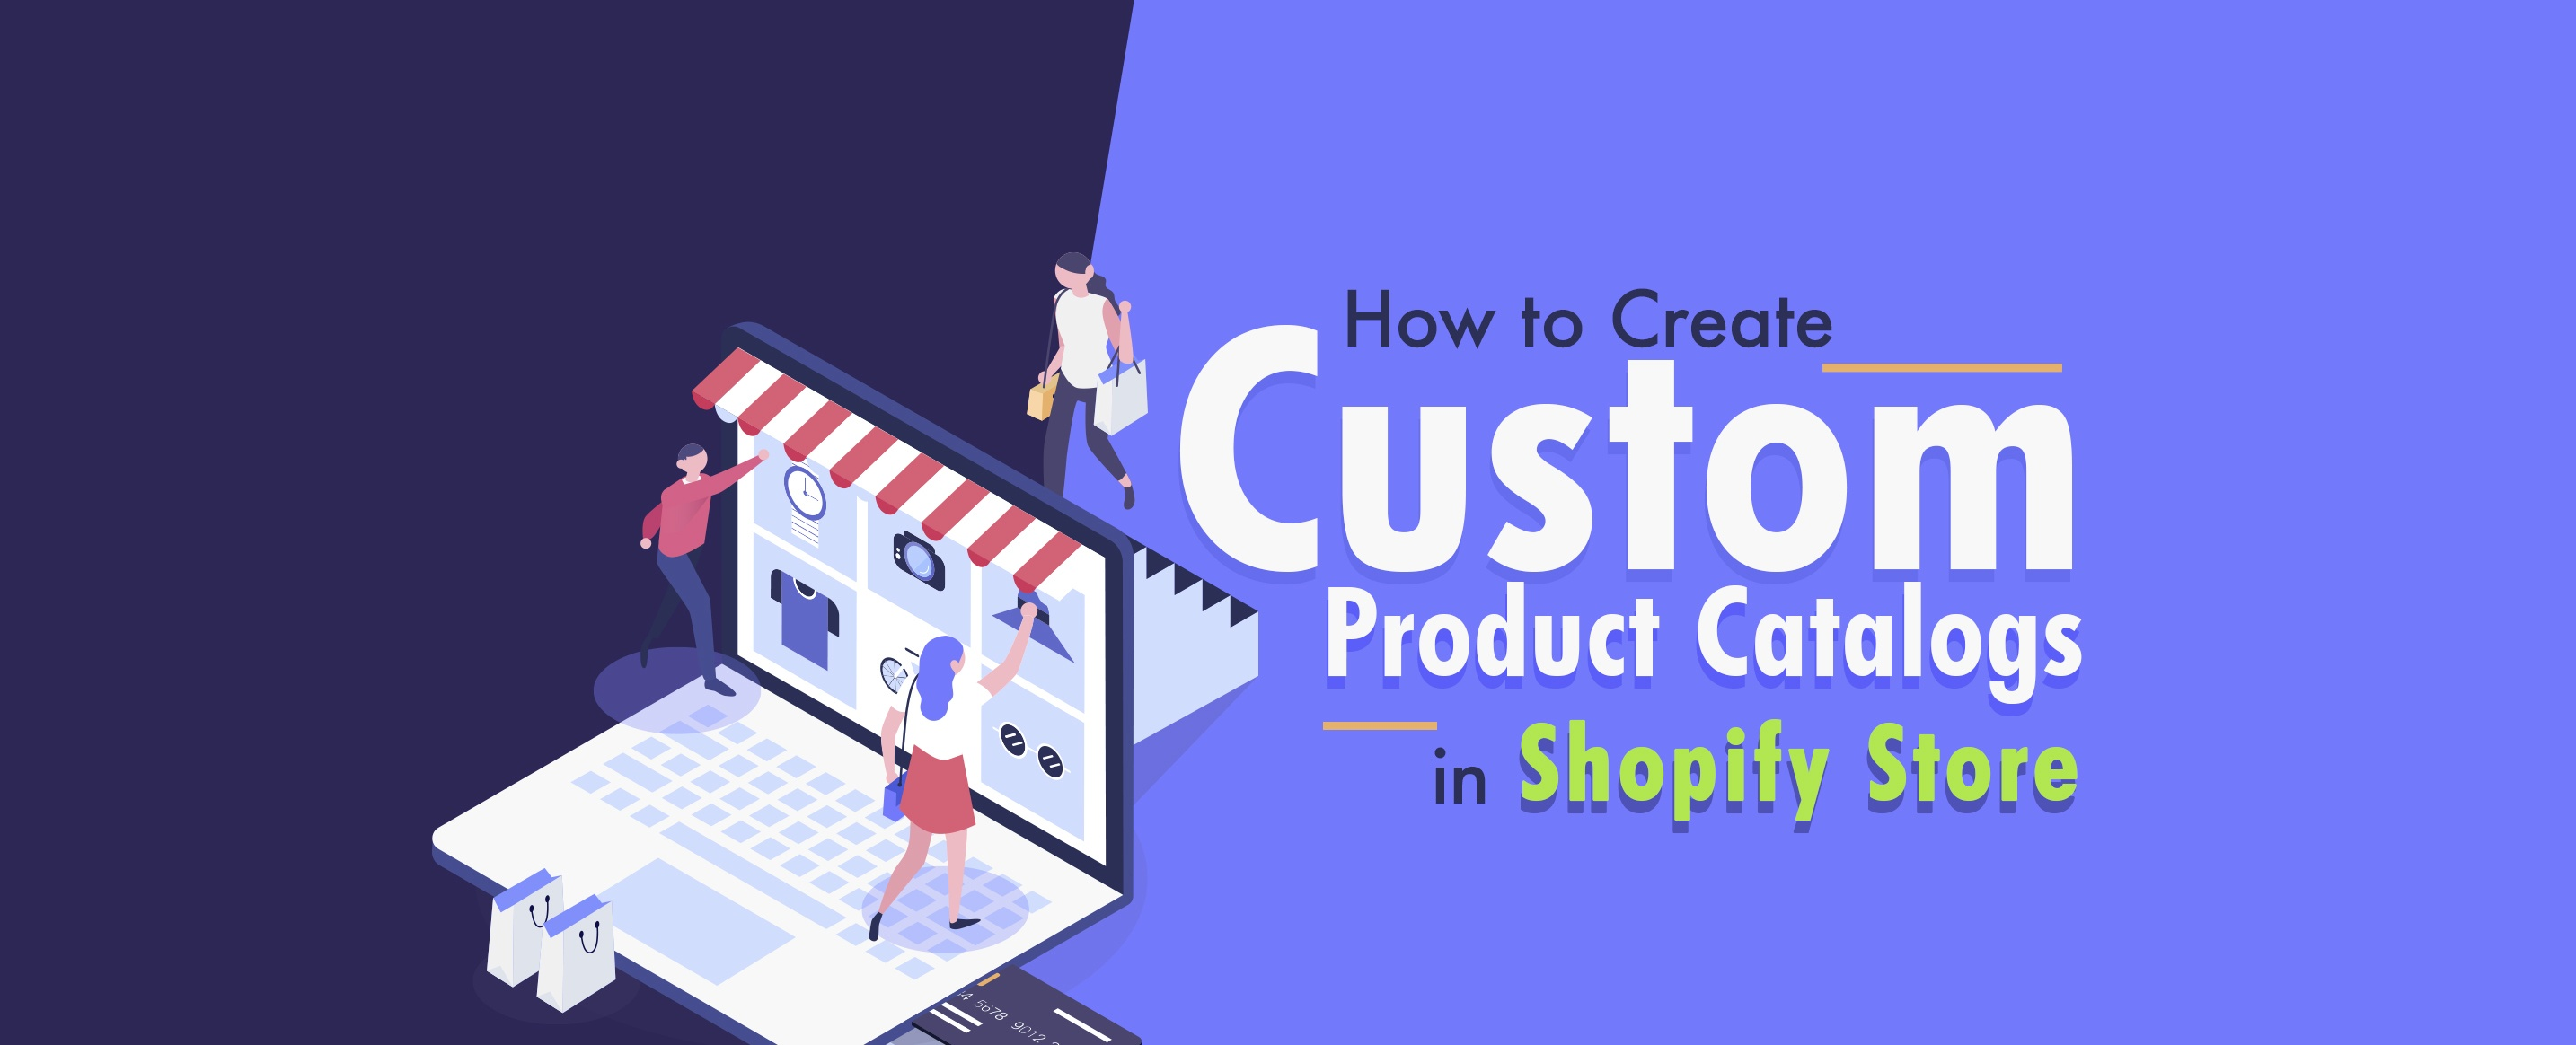 How-to-Create-Custom-Product-Catalogs-in-Shopify-Store